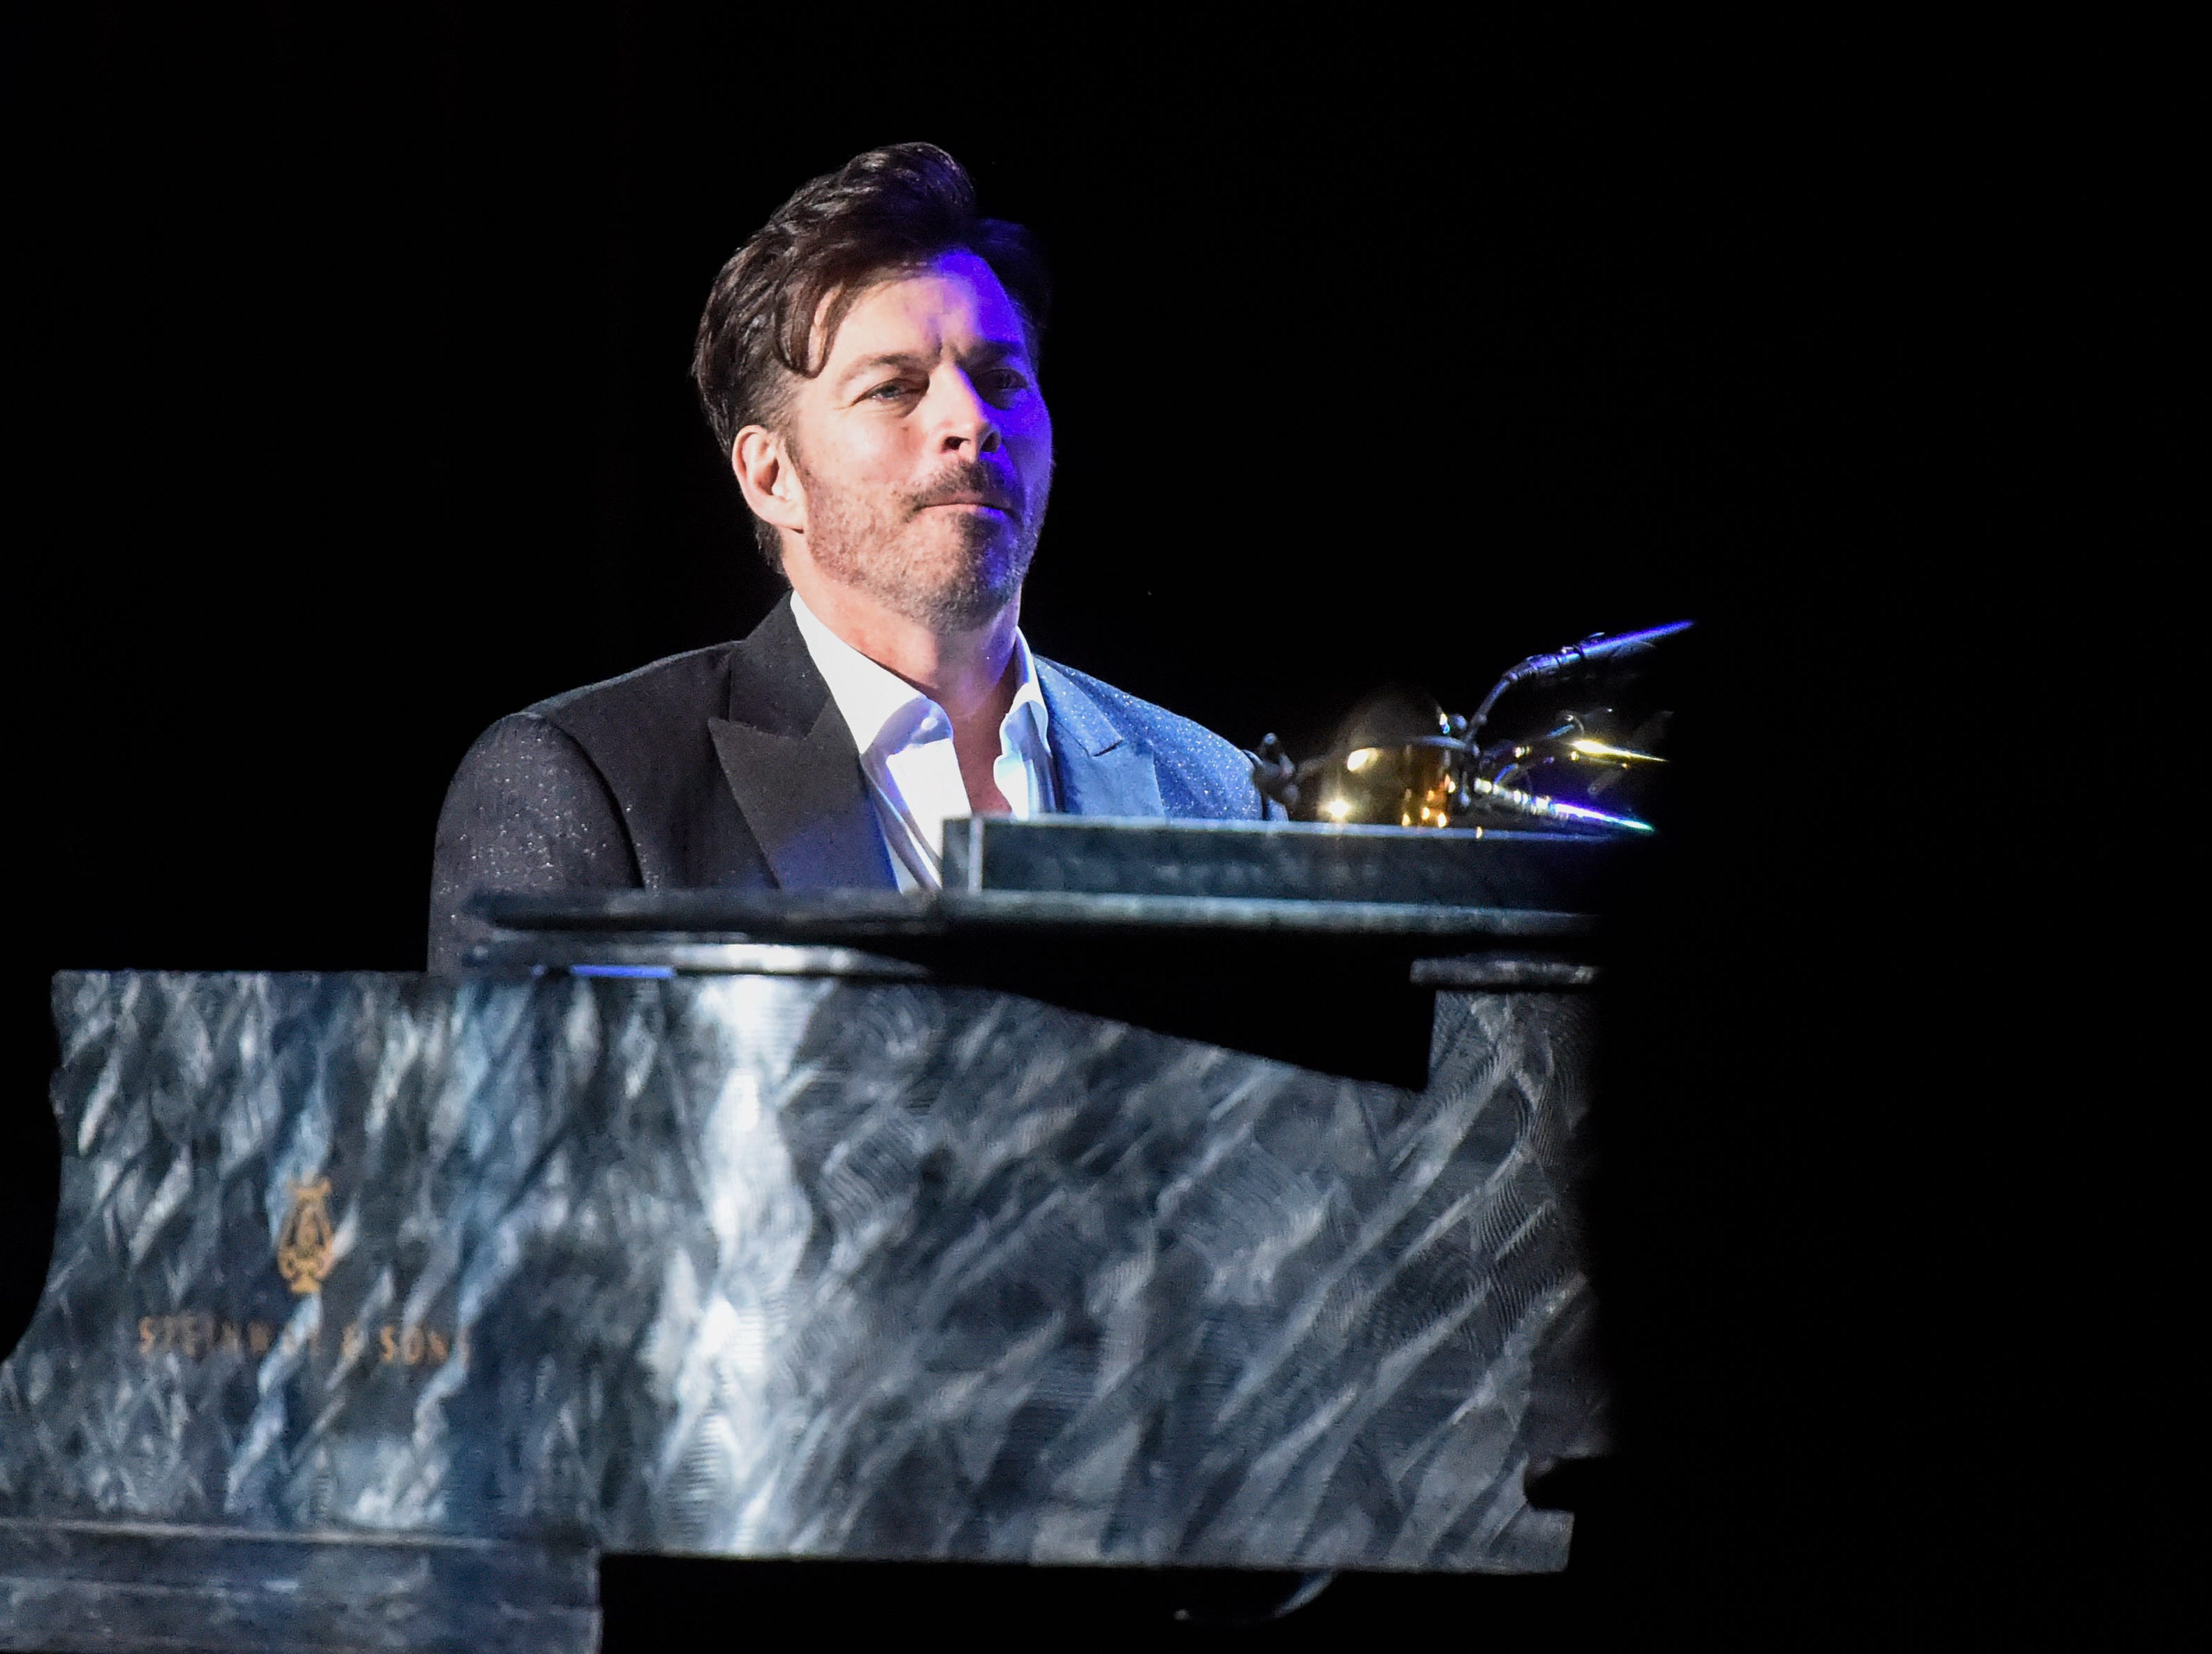 Harry Connick Jr. plays piano during his New Orleans Tricentennial Celebration at the Tennessee Theatre in Knoxville on Dec. 4, 2018.